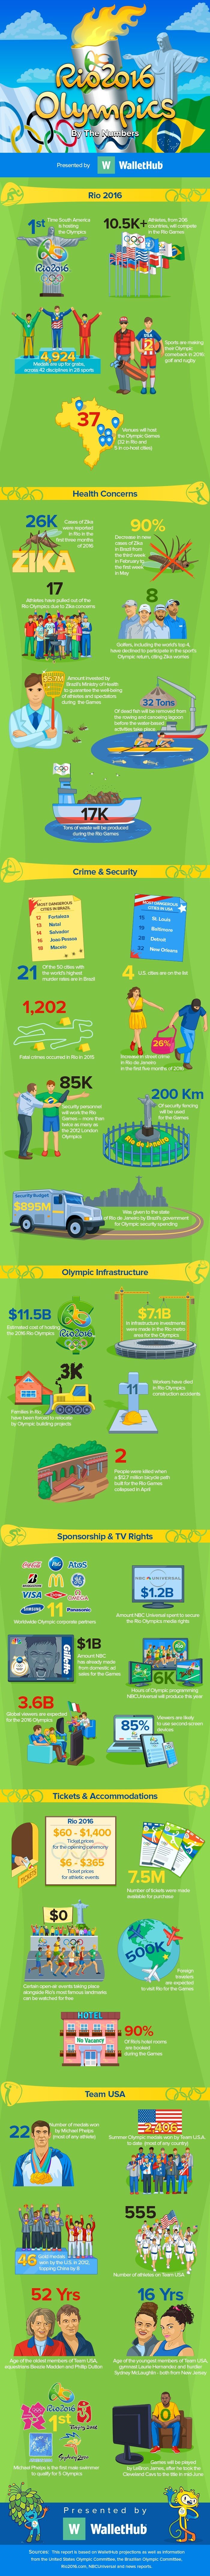 Olympics-Rio-2016-By-The-Numbers-fix-v6